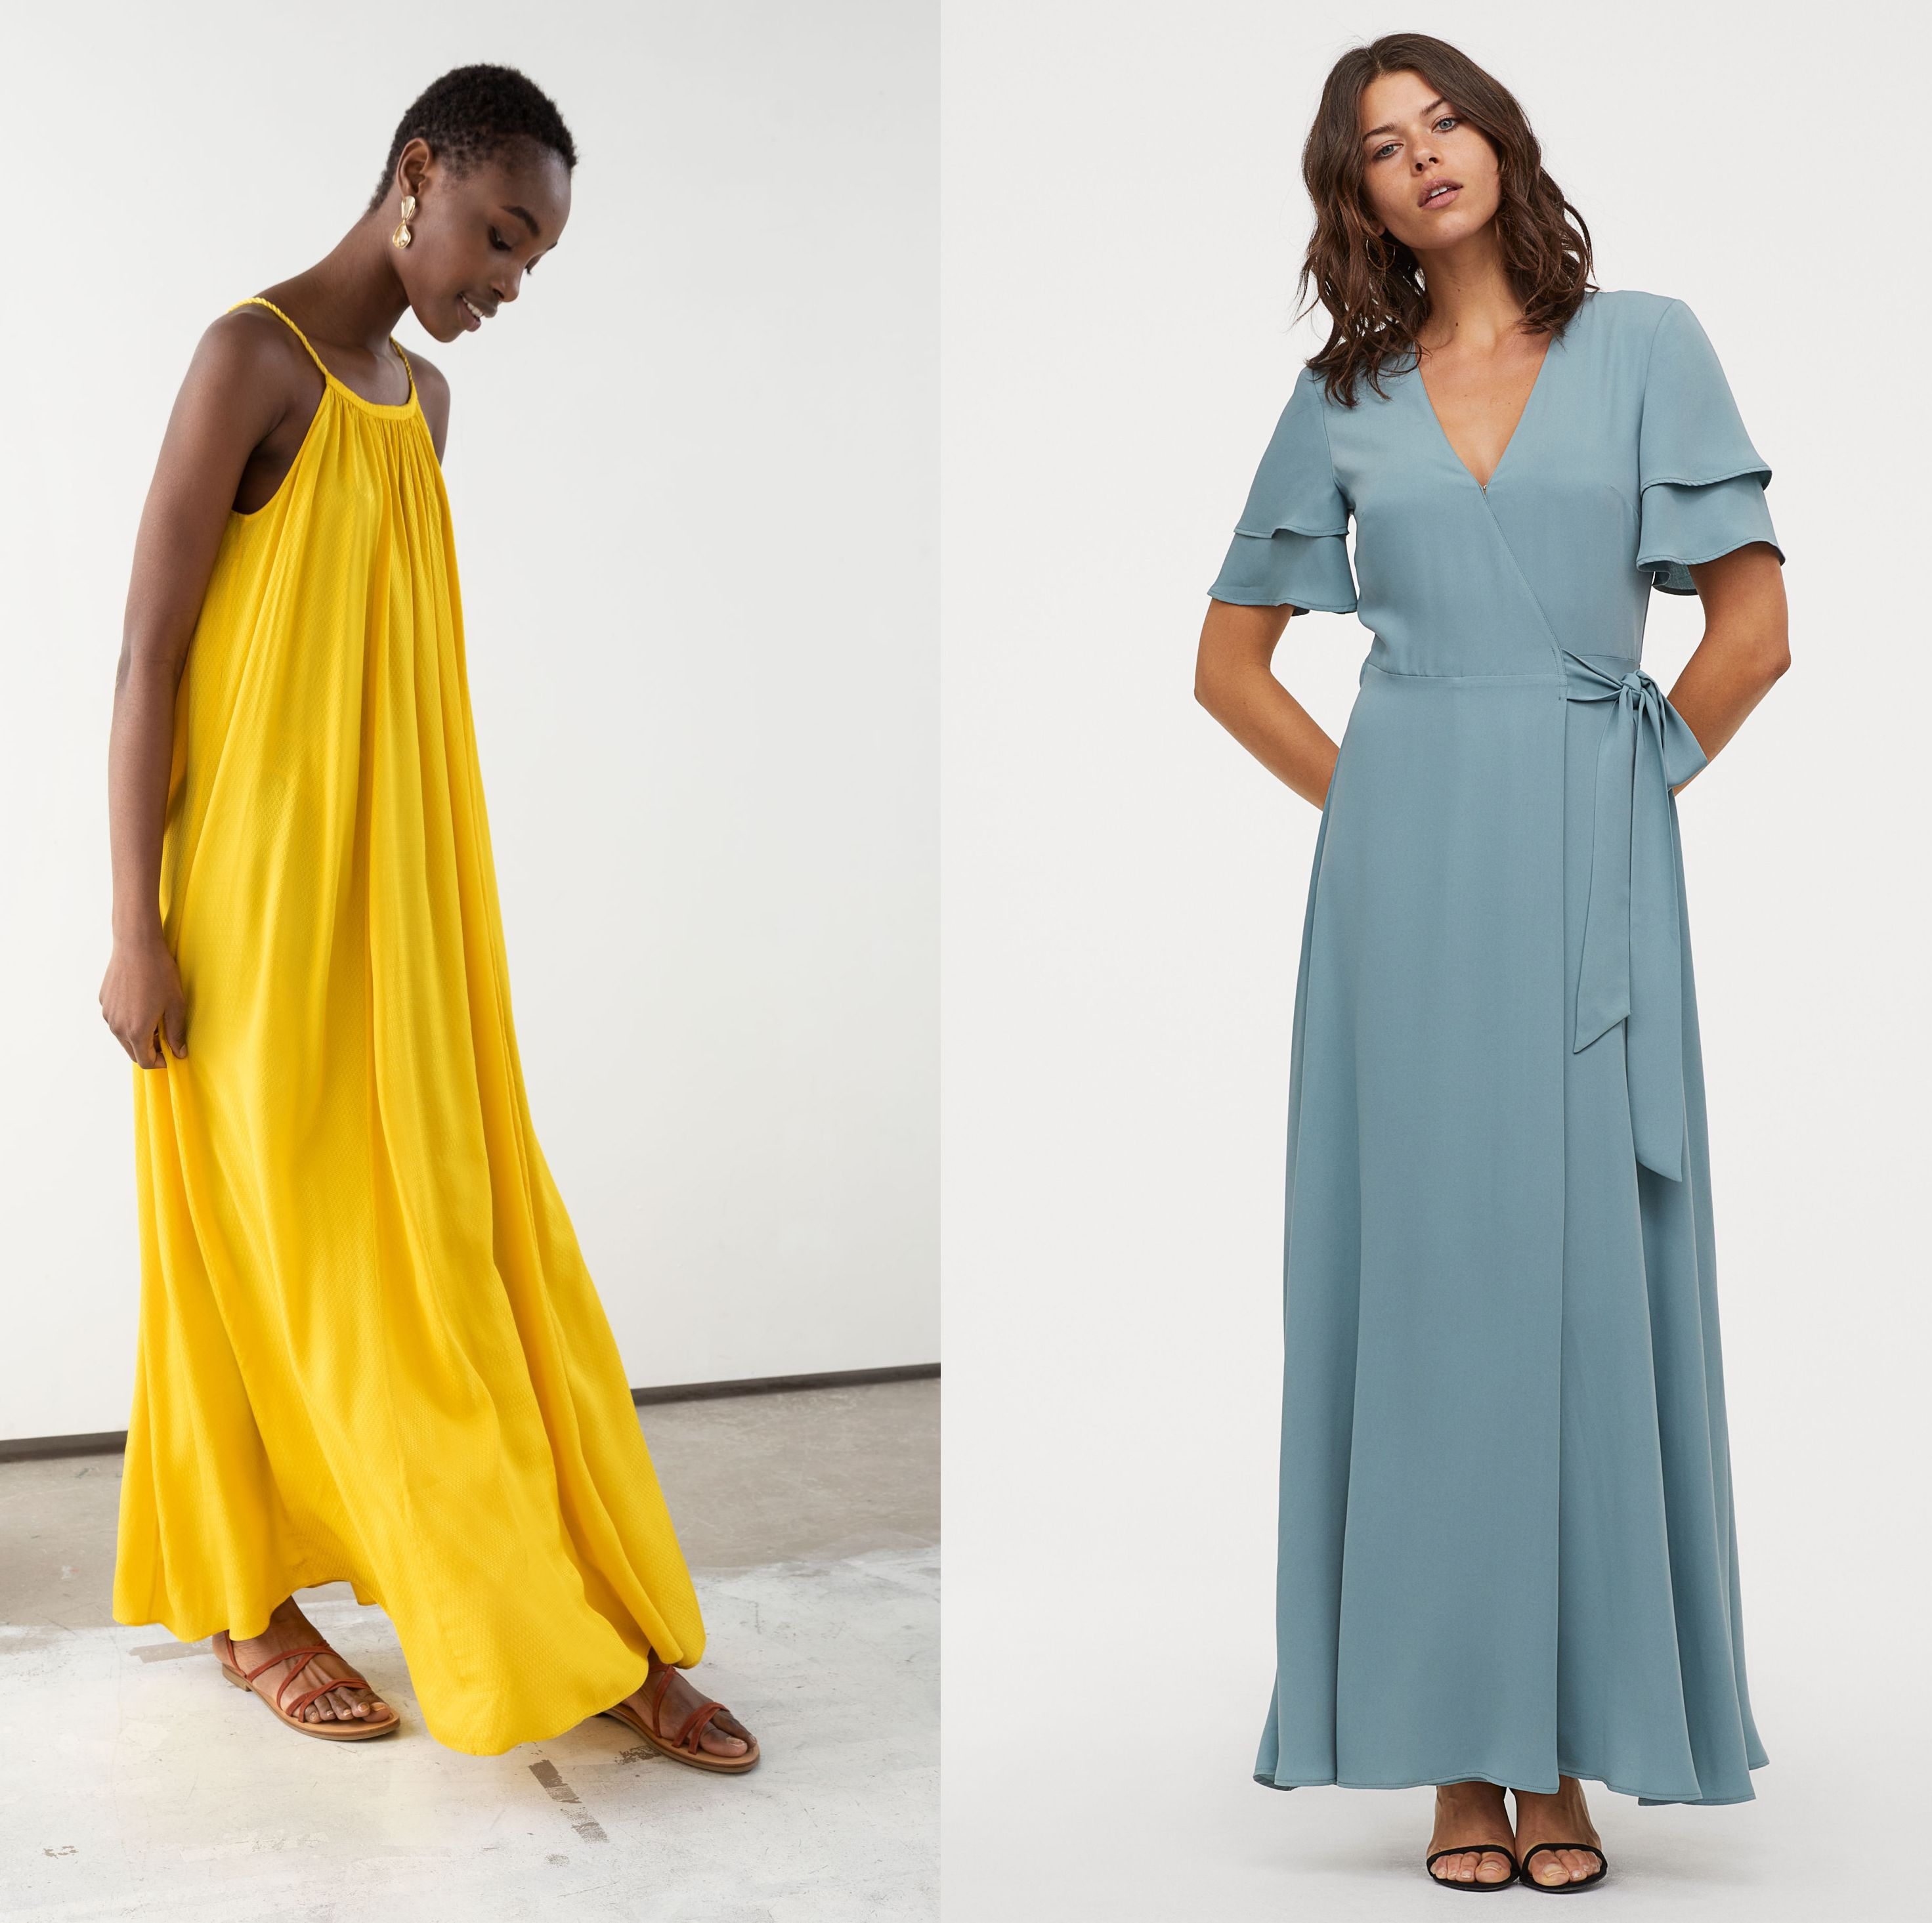 10 comfortable and stylish maxi dresses to add to your wardrobe this summer